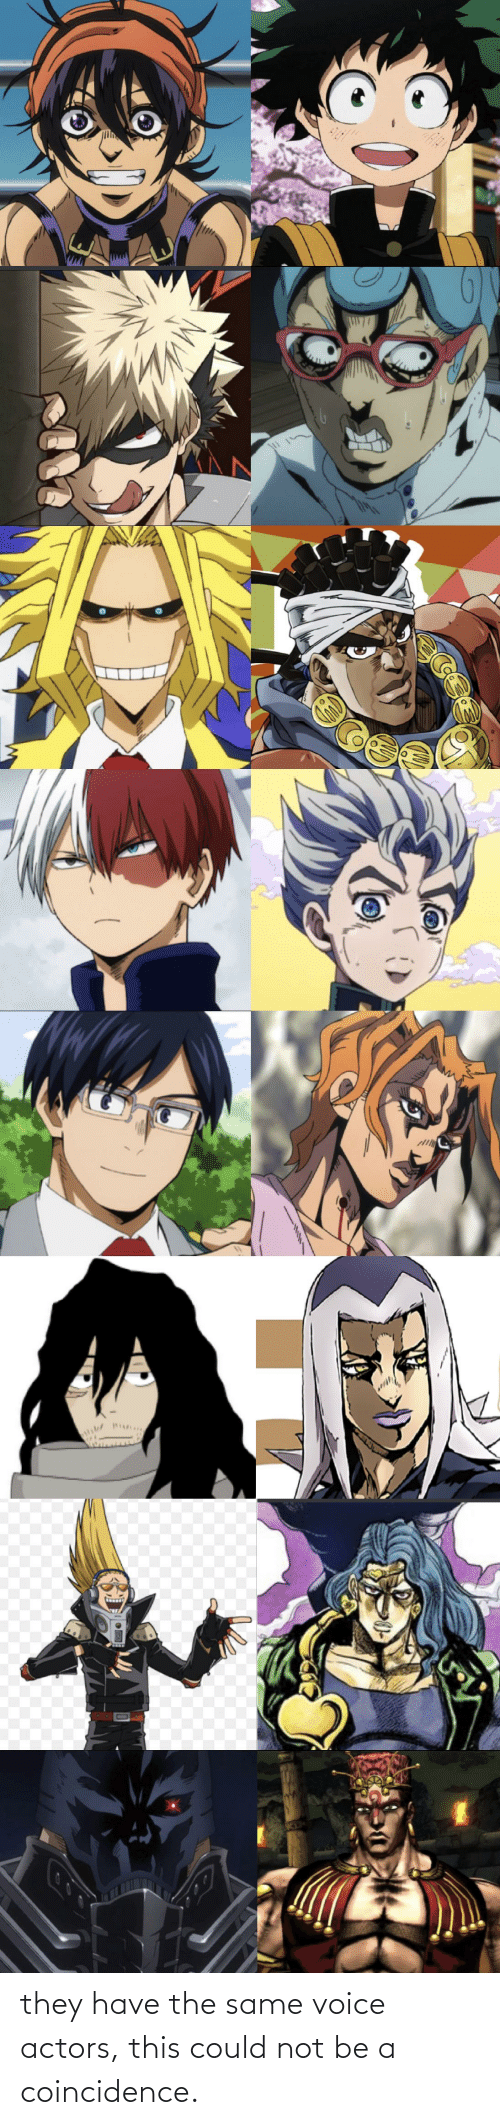 Voice, Coincidence, and They: they have the same voice actors, this could not be a coincidence.